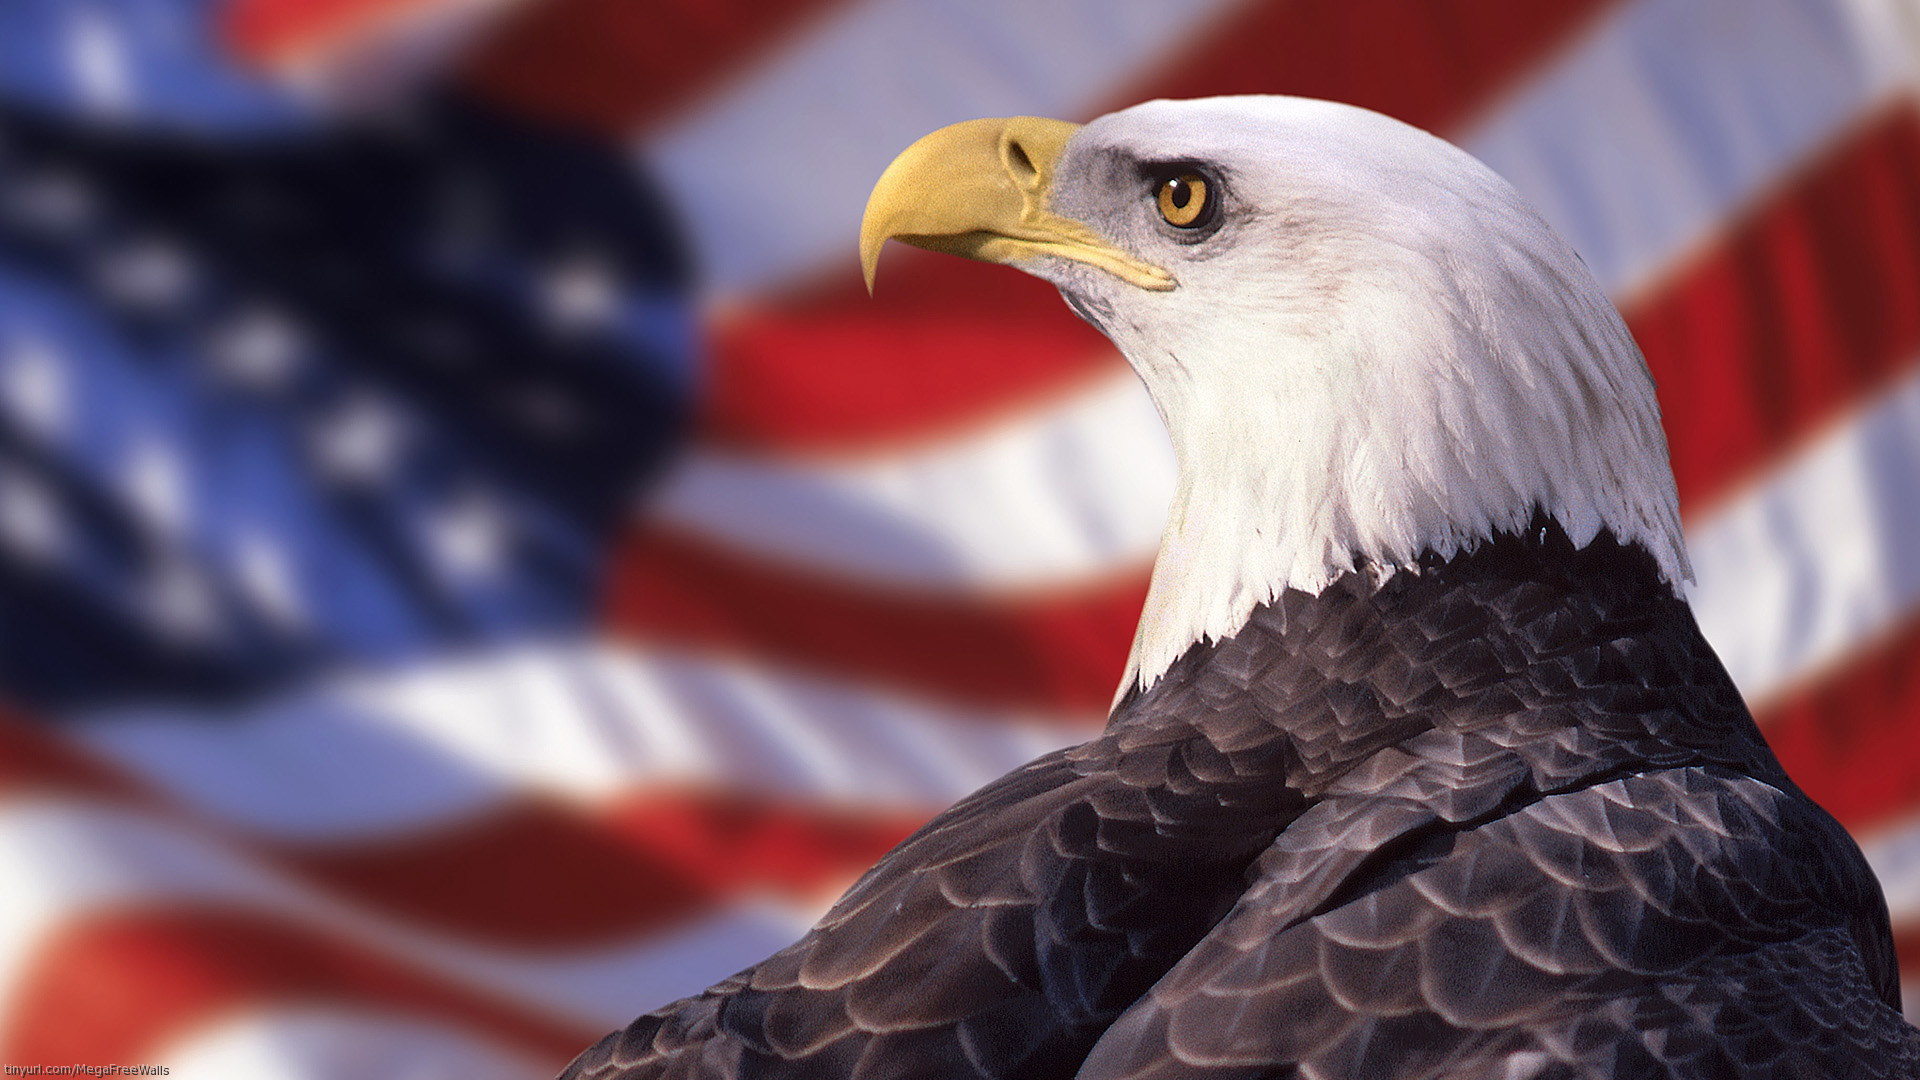 American Flag Wallpapers 1920x1080